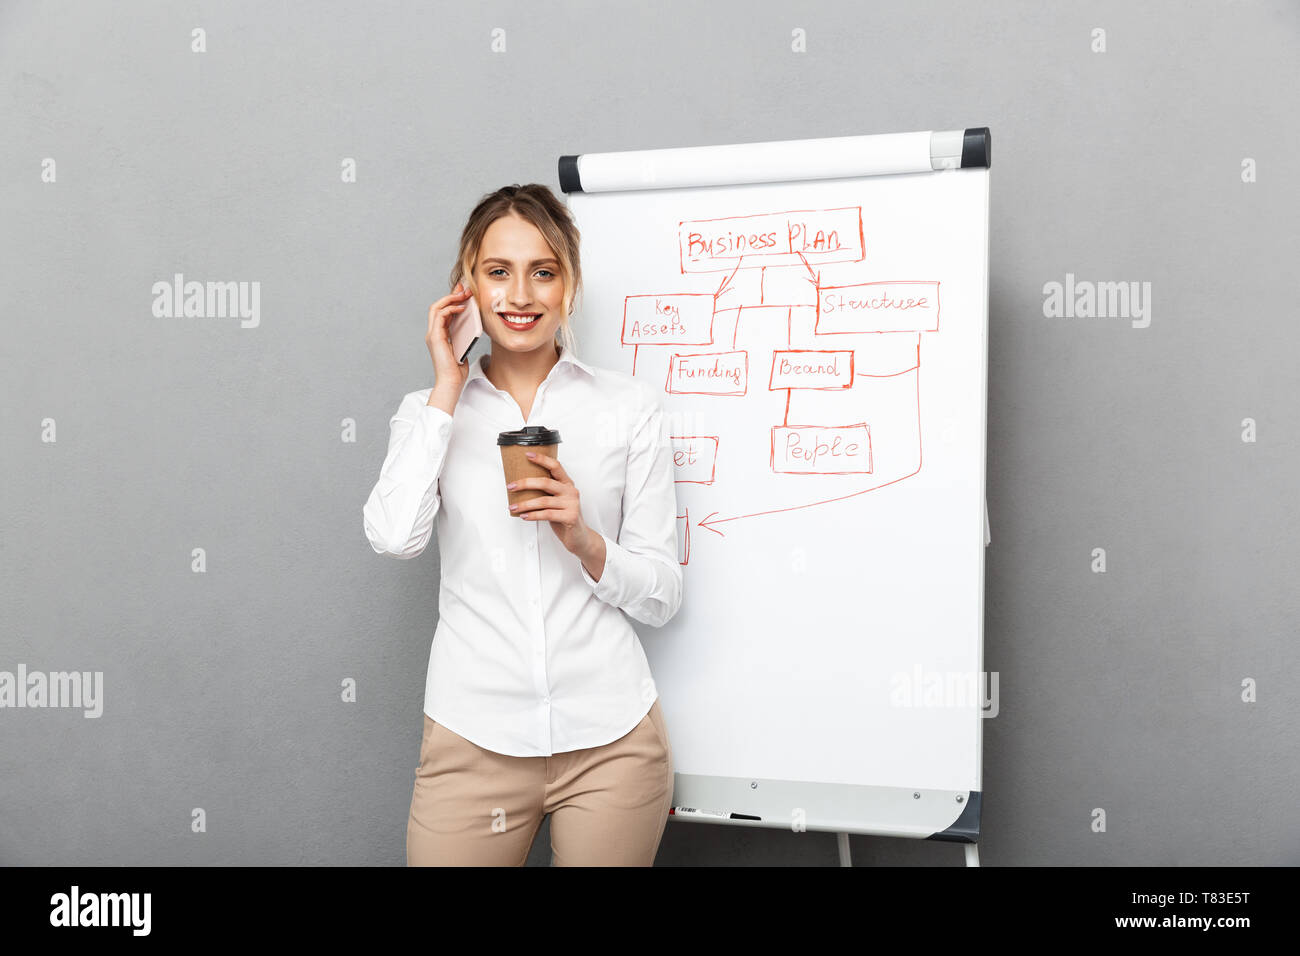 Image of satisfied businesswoman in formal wear drinking coffee while making presentation using flipchart in the office isolated over gray background - Stock Image